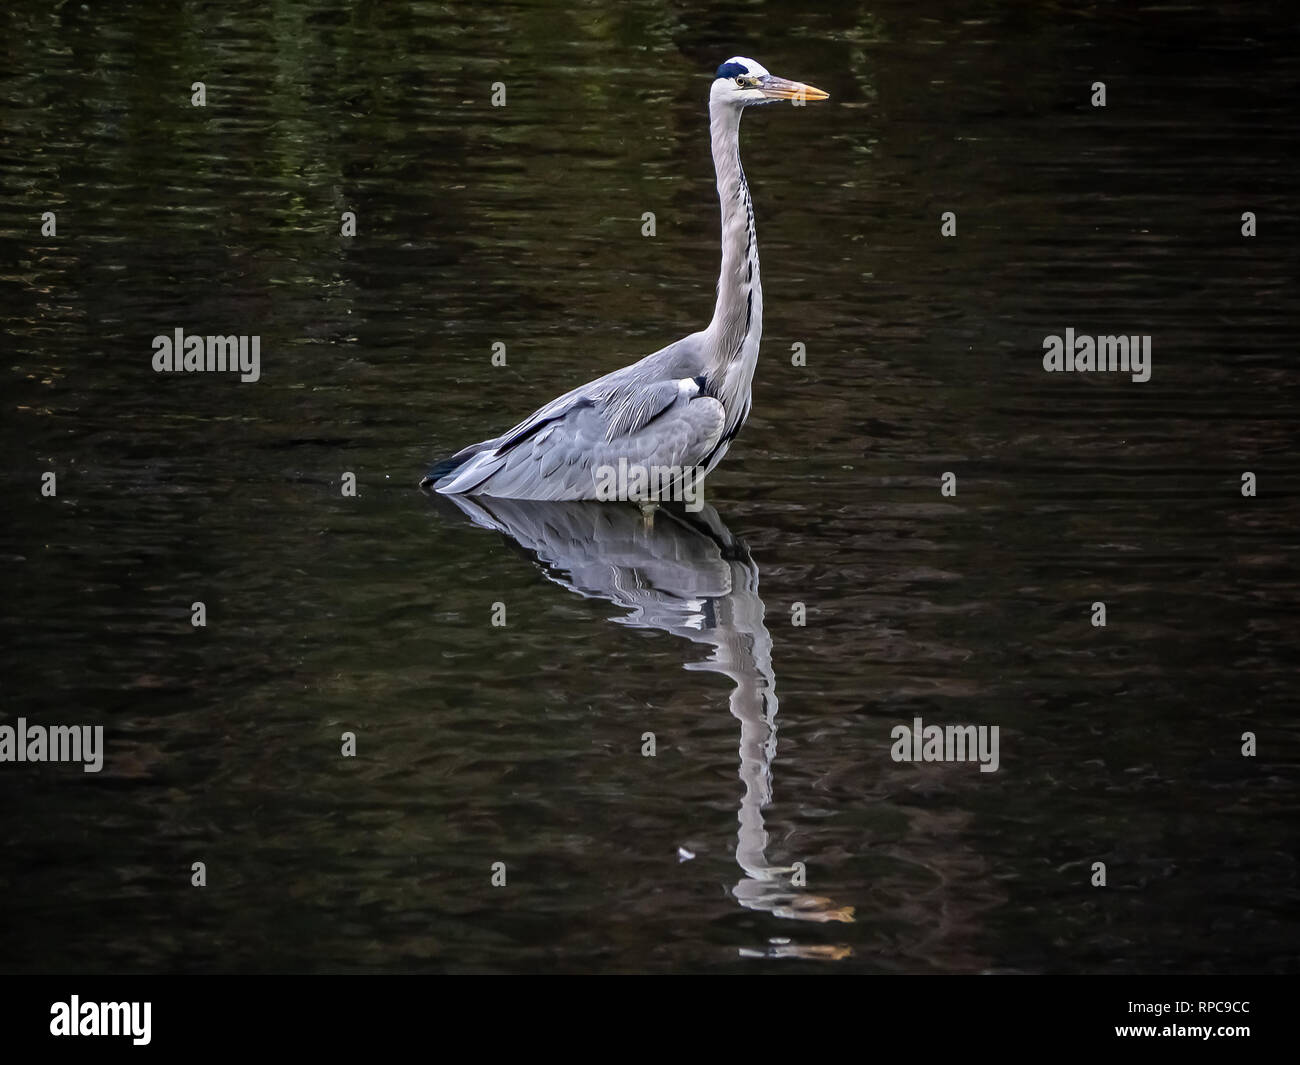 A Japanese gray heron wades in a pond in a forest and nature preserve in central Kanagawa Prefecture, Japan. - Stock Image